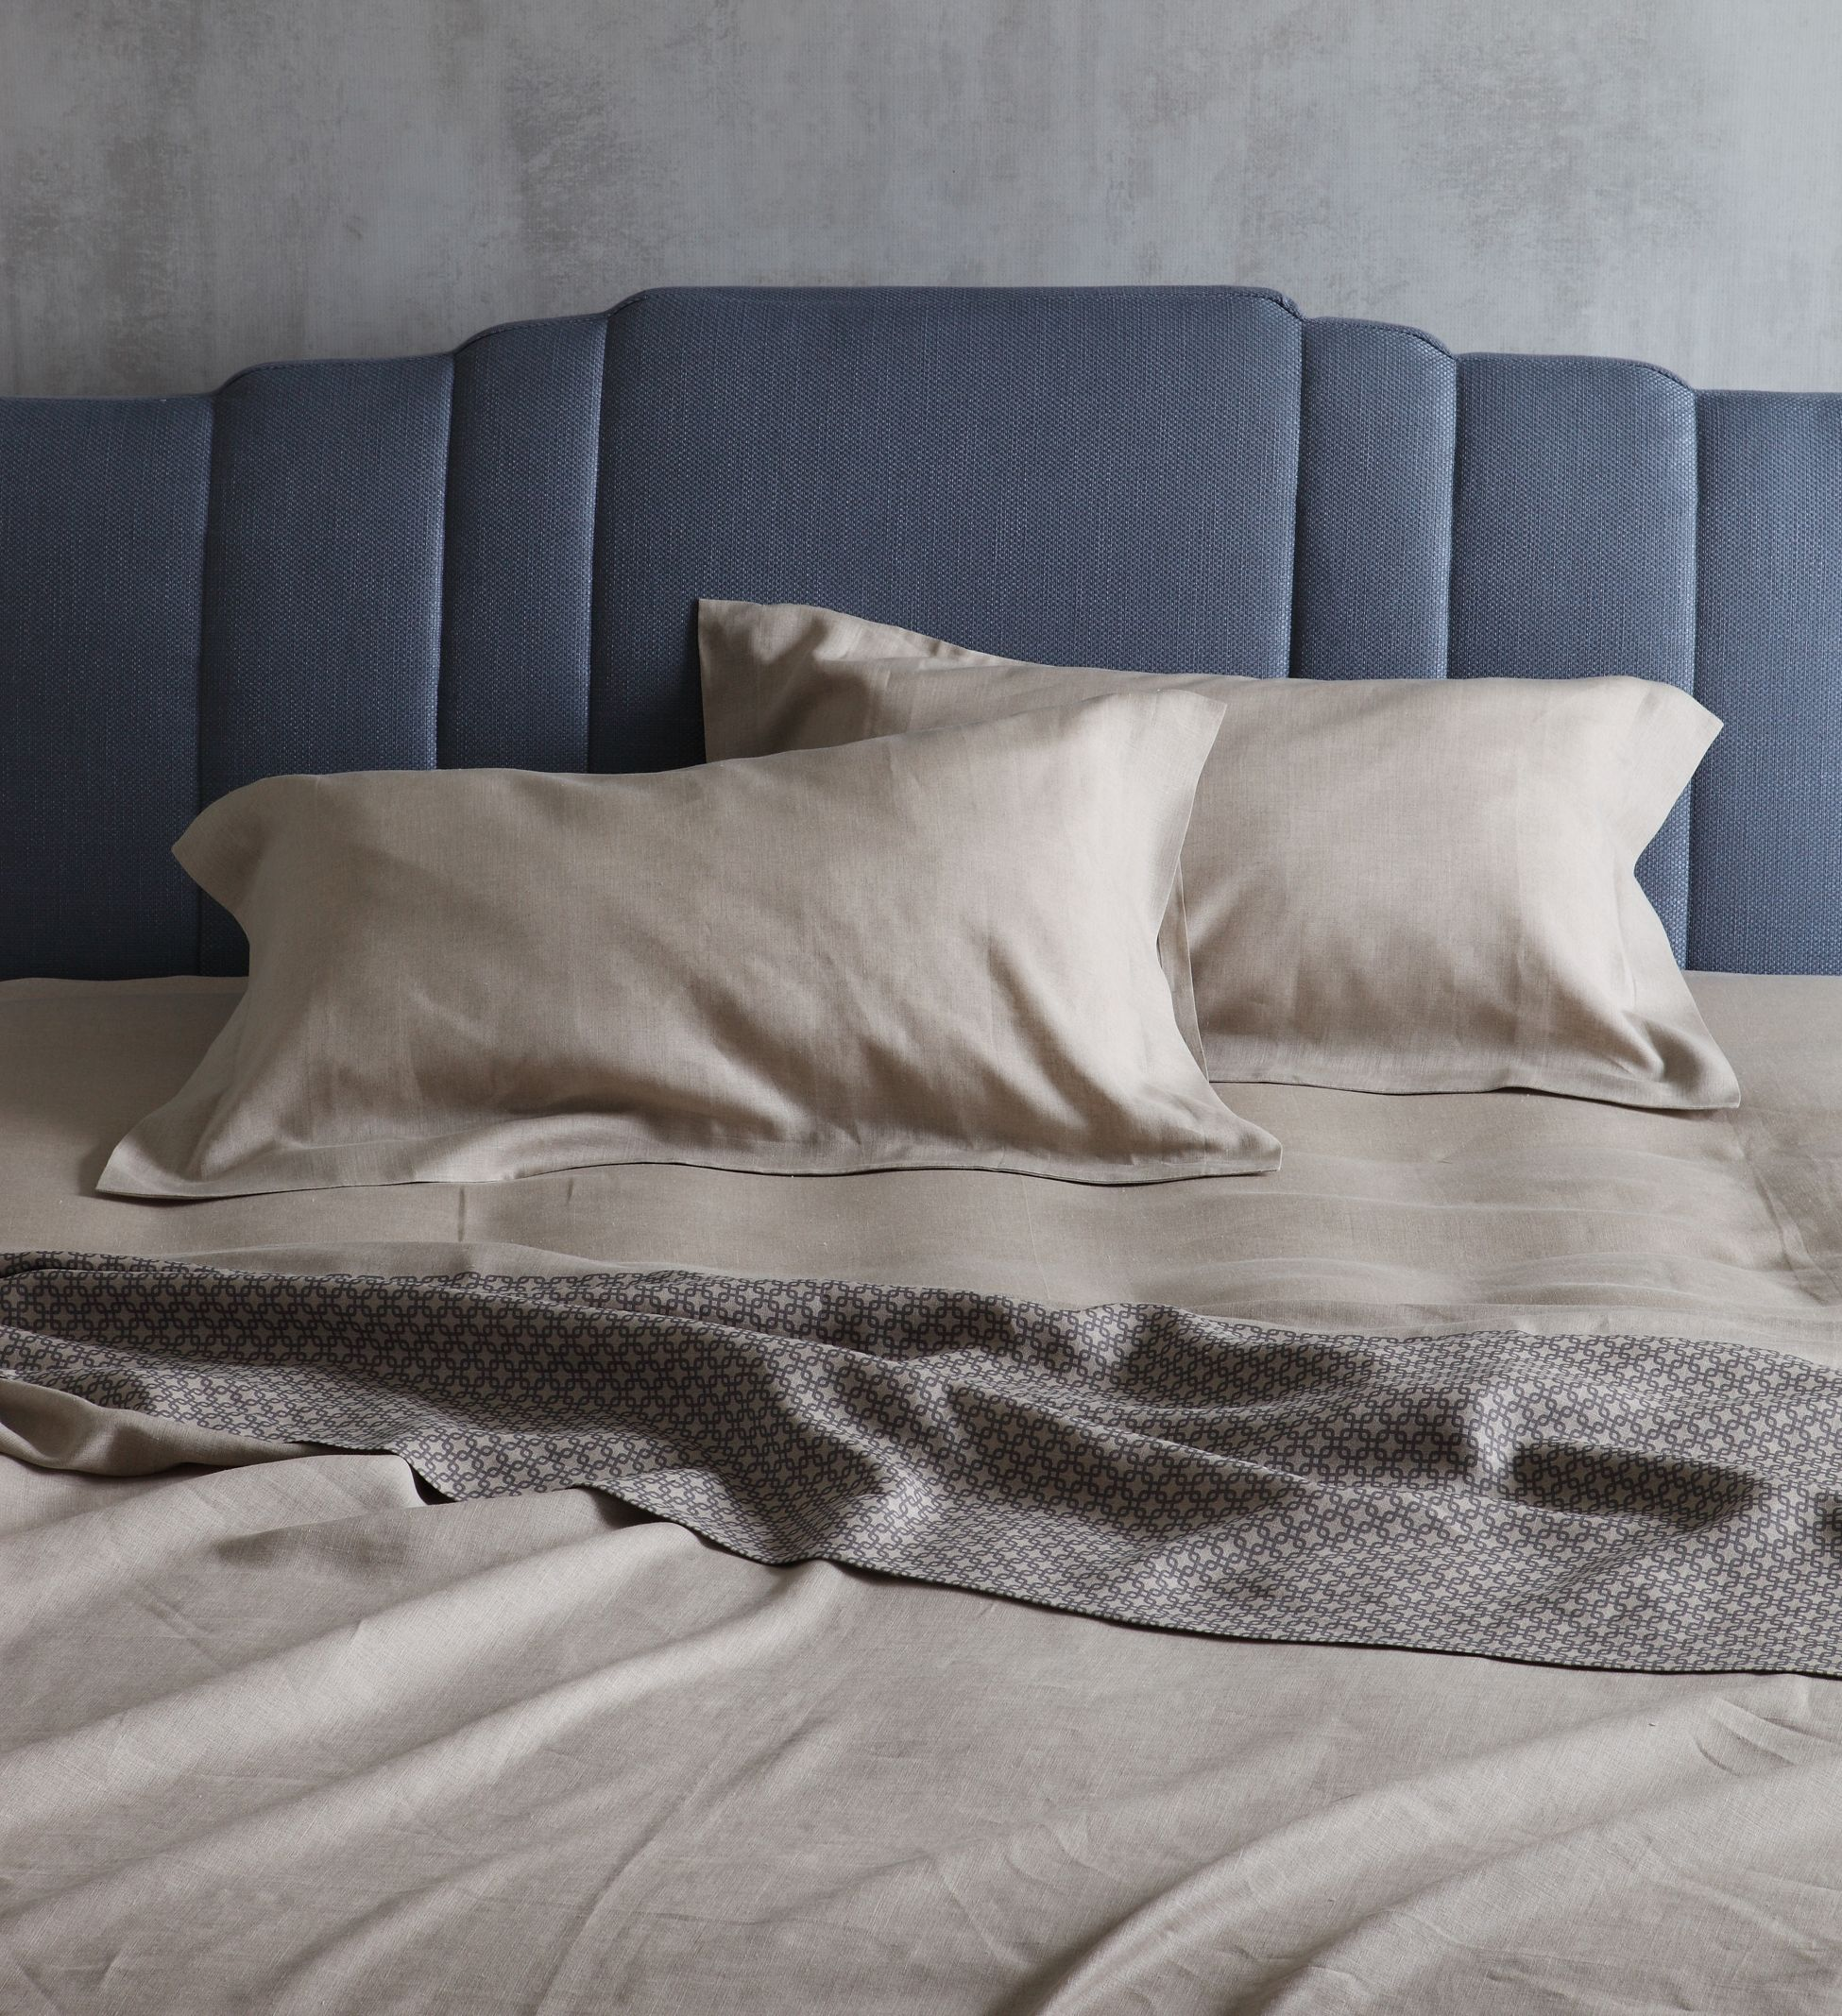 Is The Summer Heat Beginning To Make Itself Felt And You Need To Stow Away  Youur Duvet? The Flou Sheets Have Been Waiting Patiently For This To Happen!